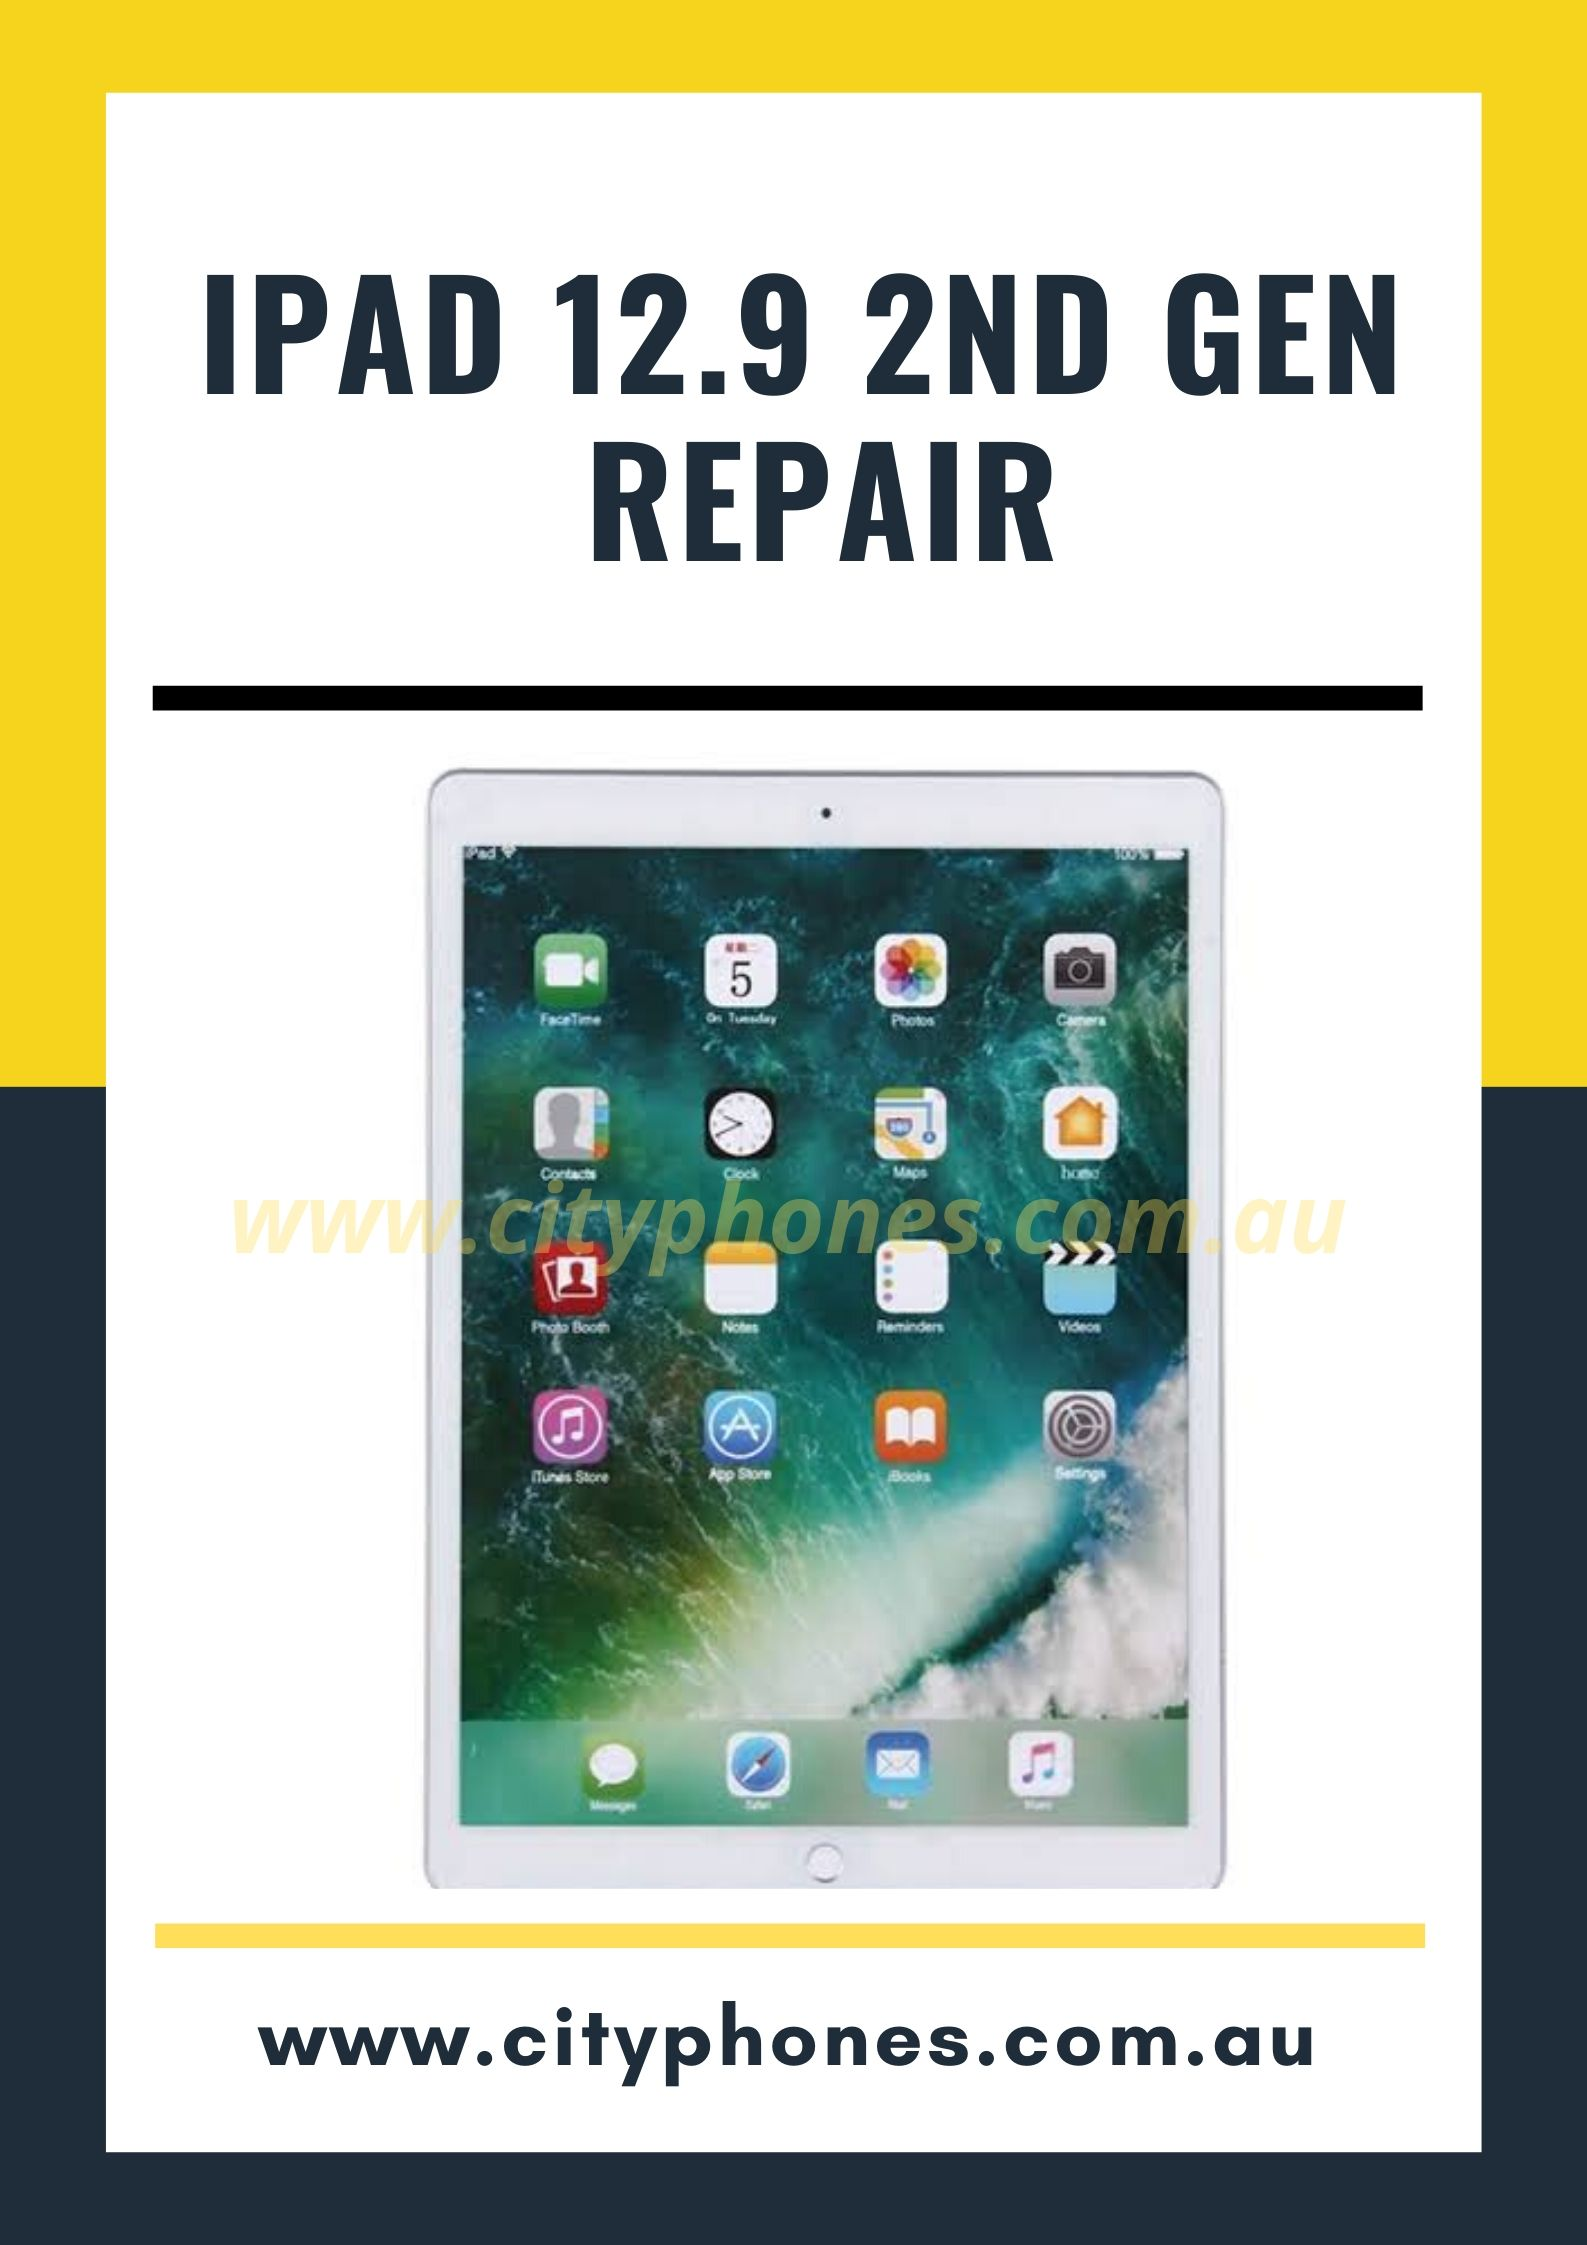 iPad 12.9 2nd gen screen repair